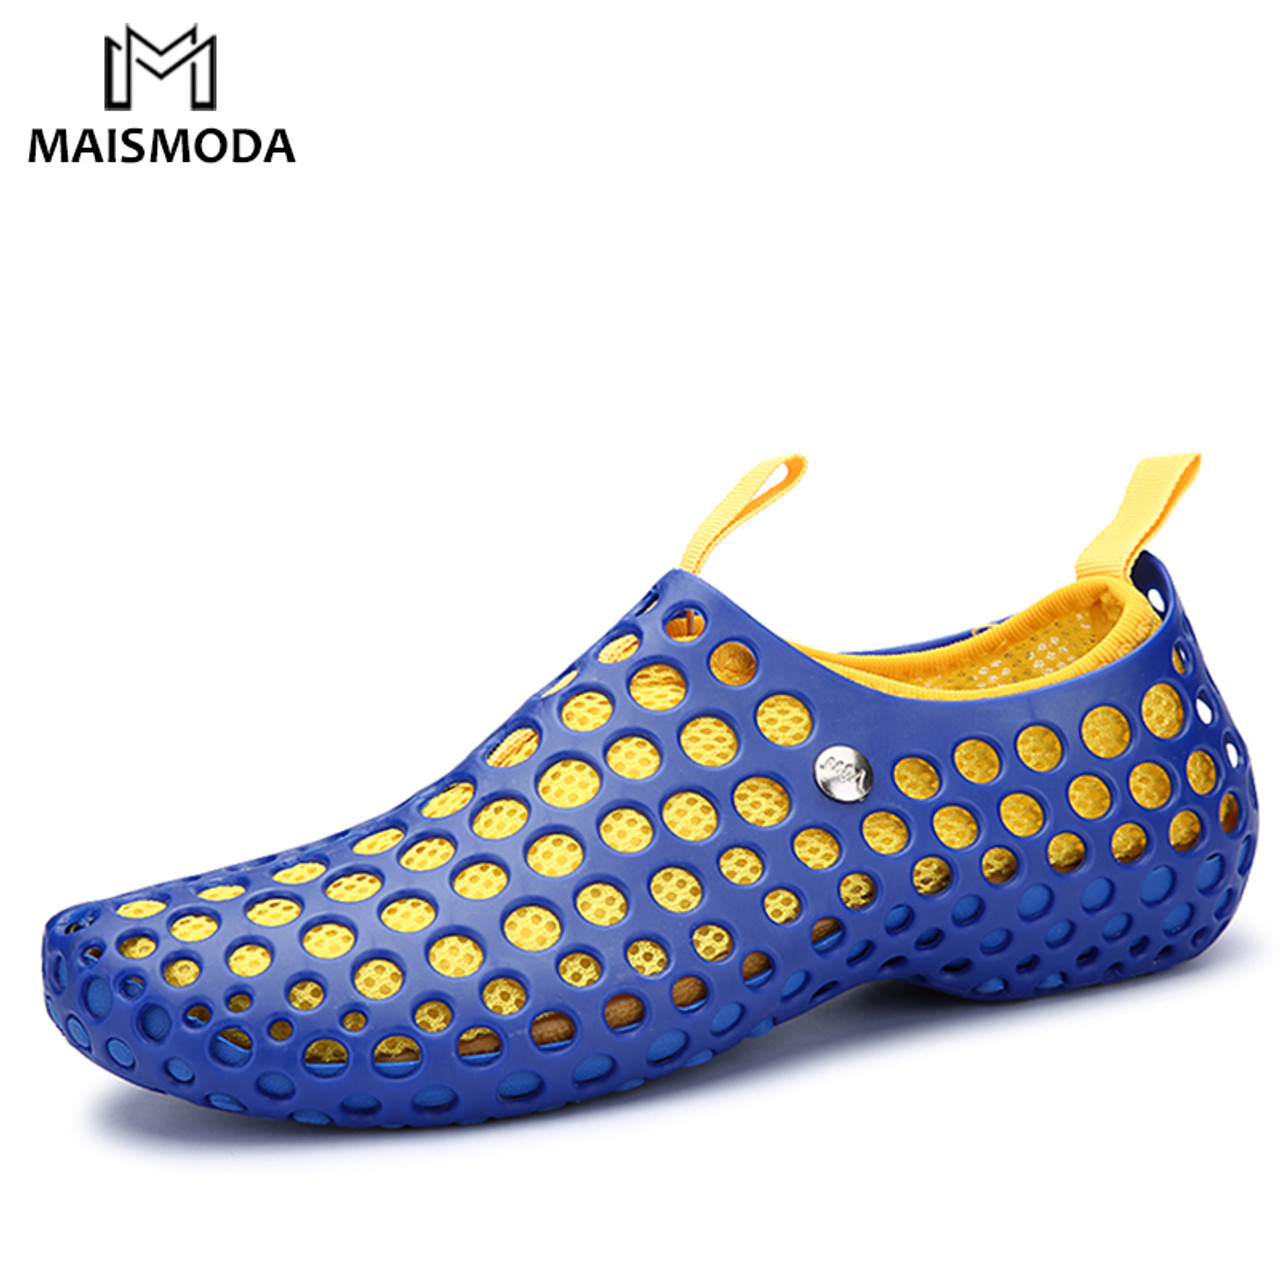 MAISMODA 2018 Summer Hollow Casual Men Sandals Fashion Breathable Flat  Beach HolesBeach Shoes Water Shoes Slippers YL183 - OnshopDeals.Com d91057773ad7